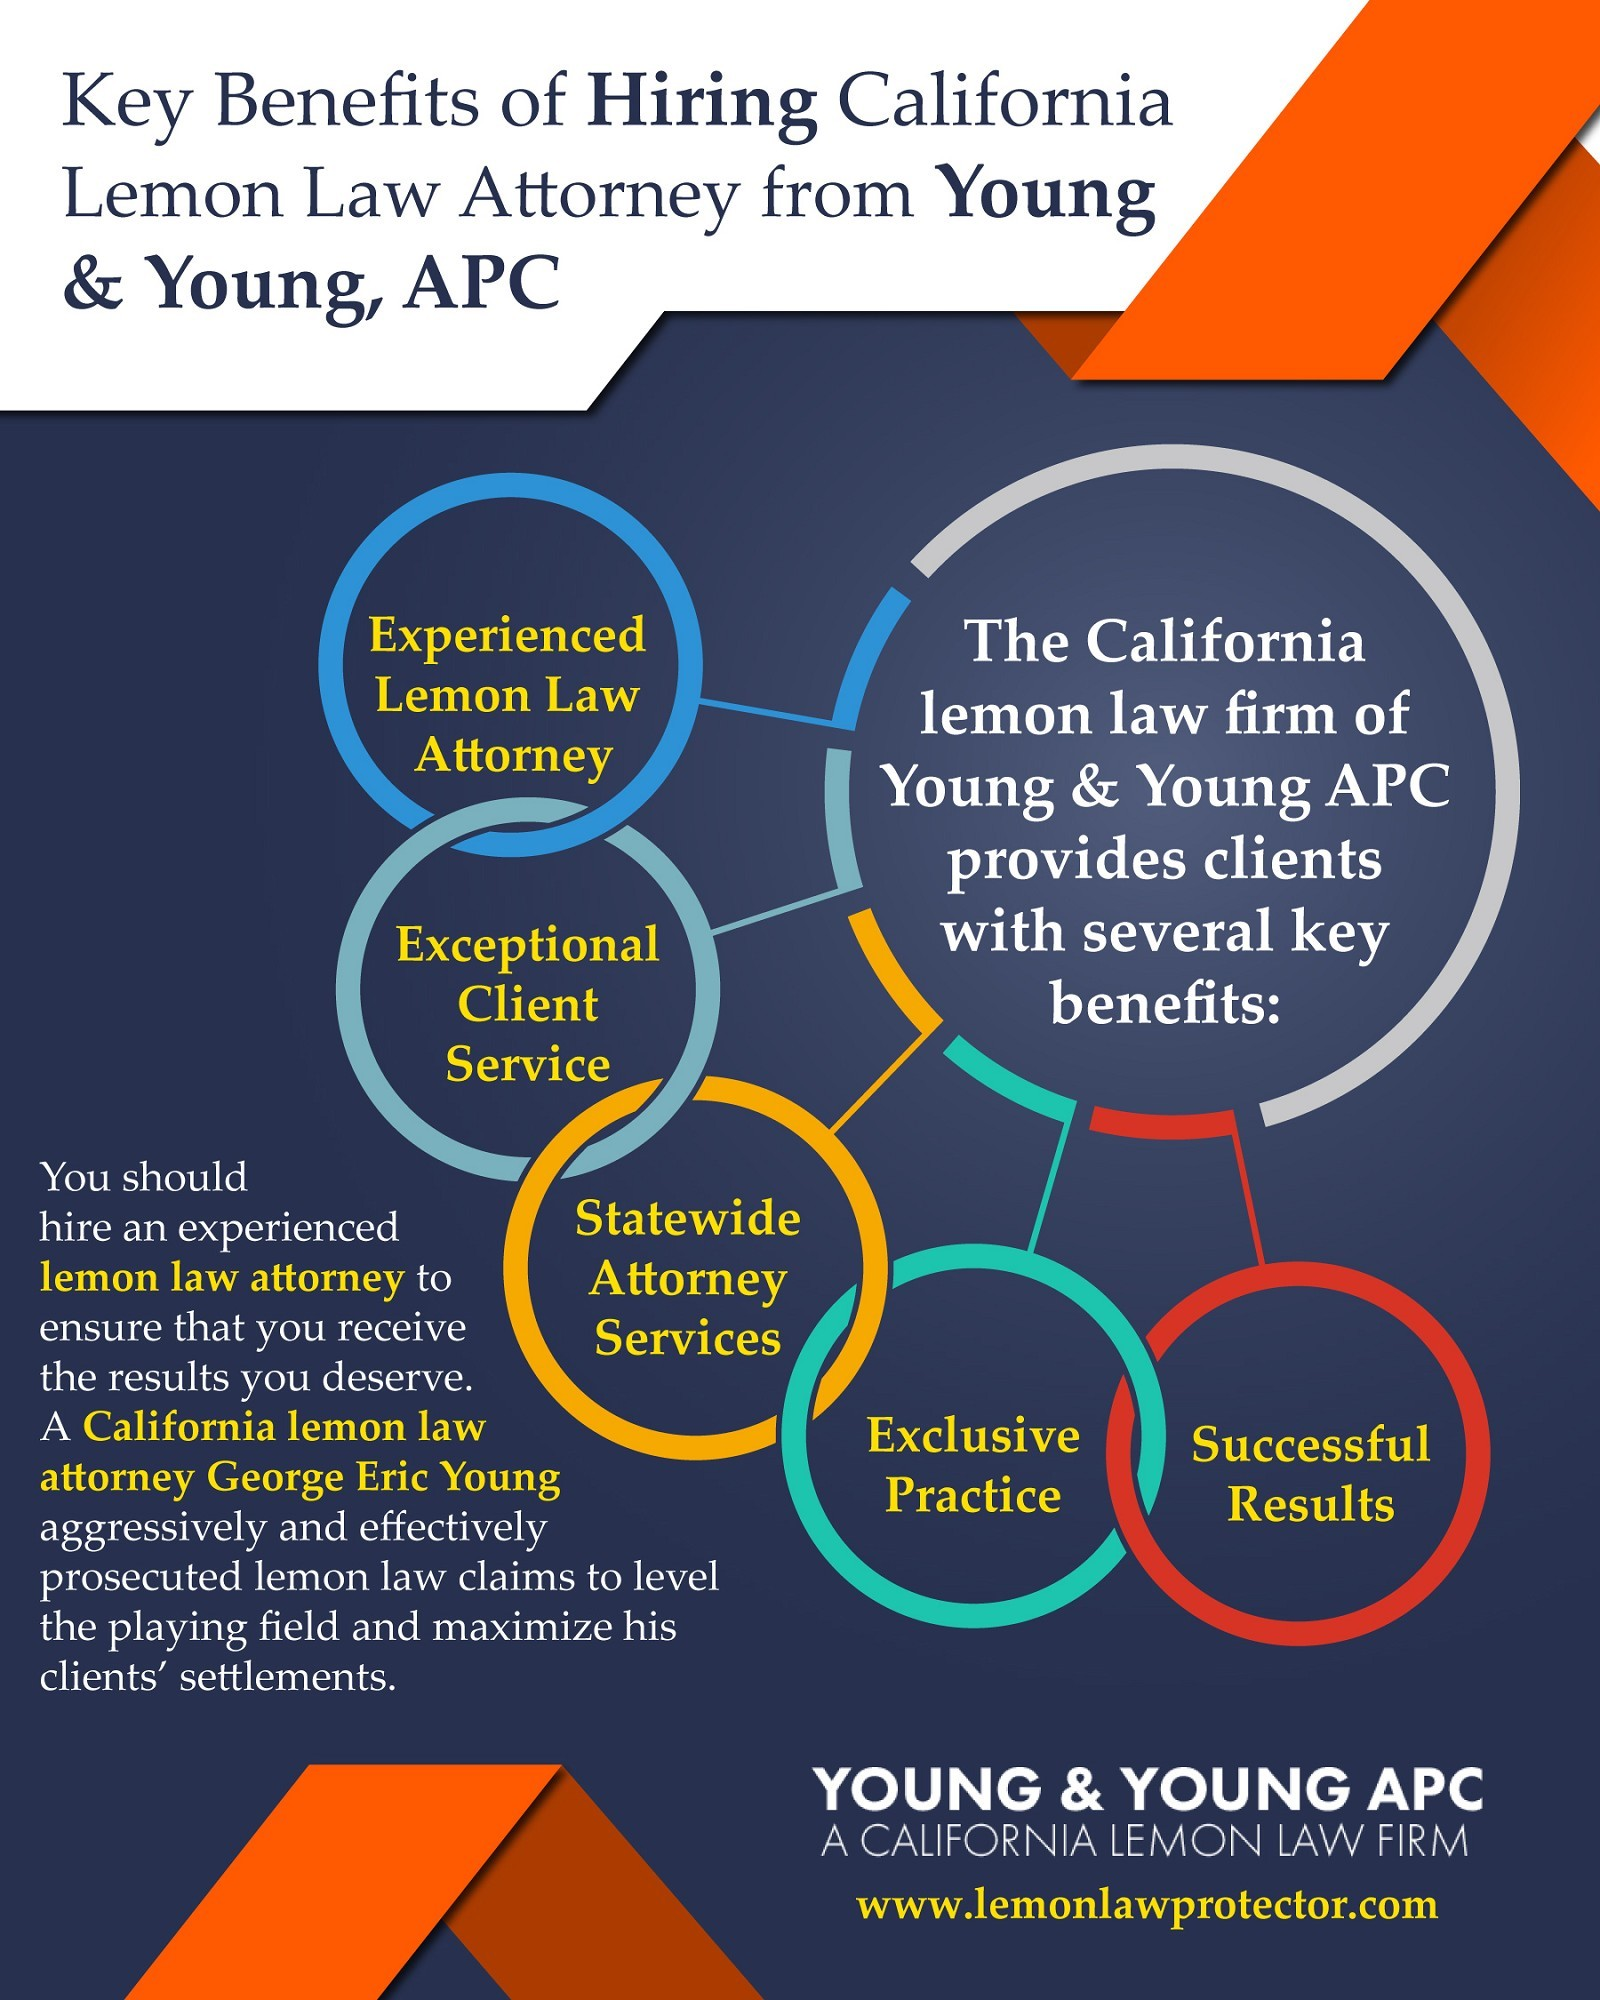 Key Benefits Of Hiring California Lemon Law Attorney From Young & Young, APC